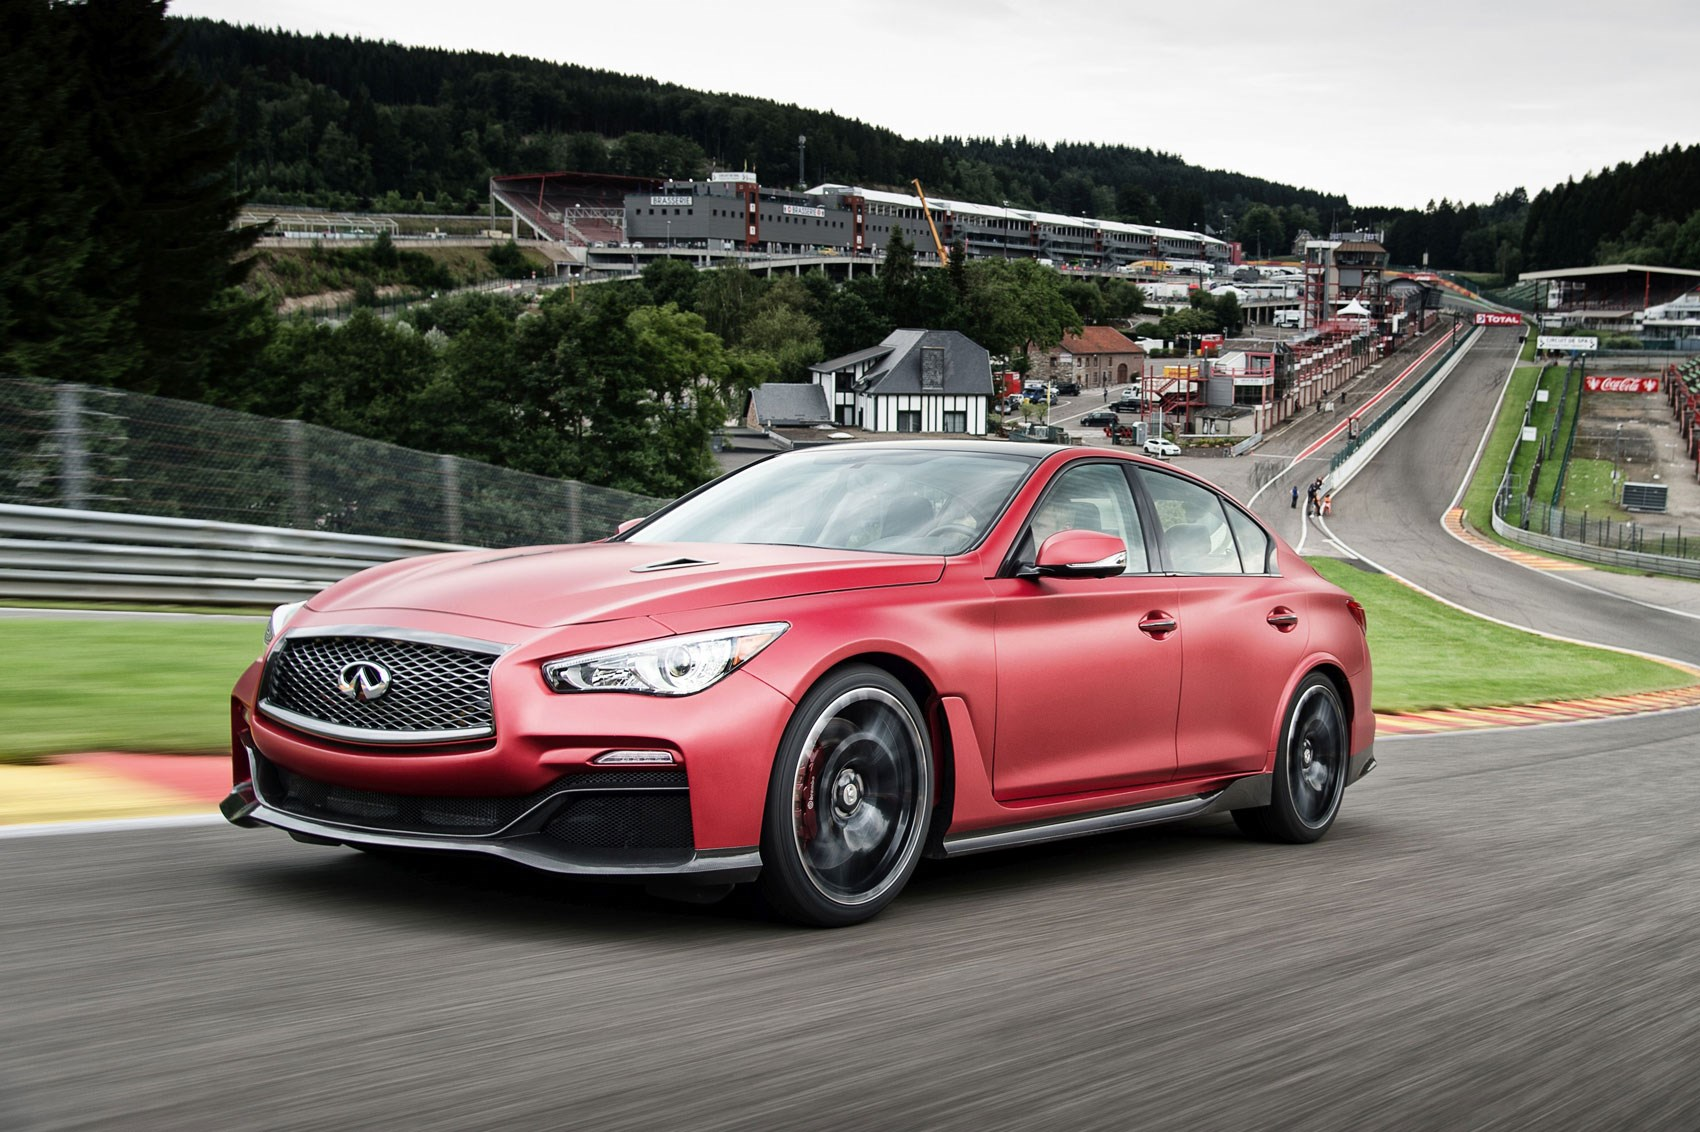 infinitis hp infinity news red for priced sale infiniti h sport from